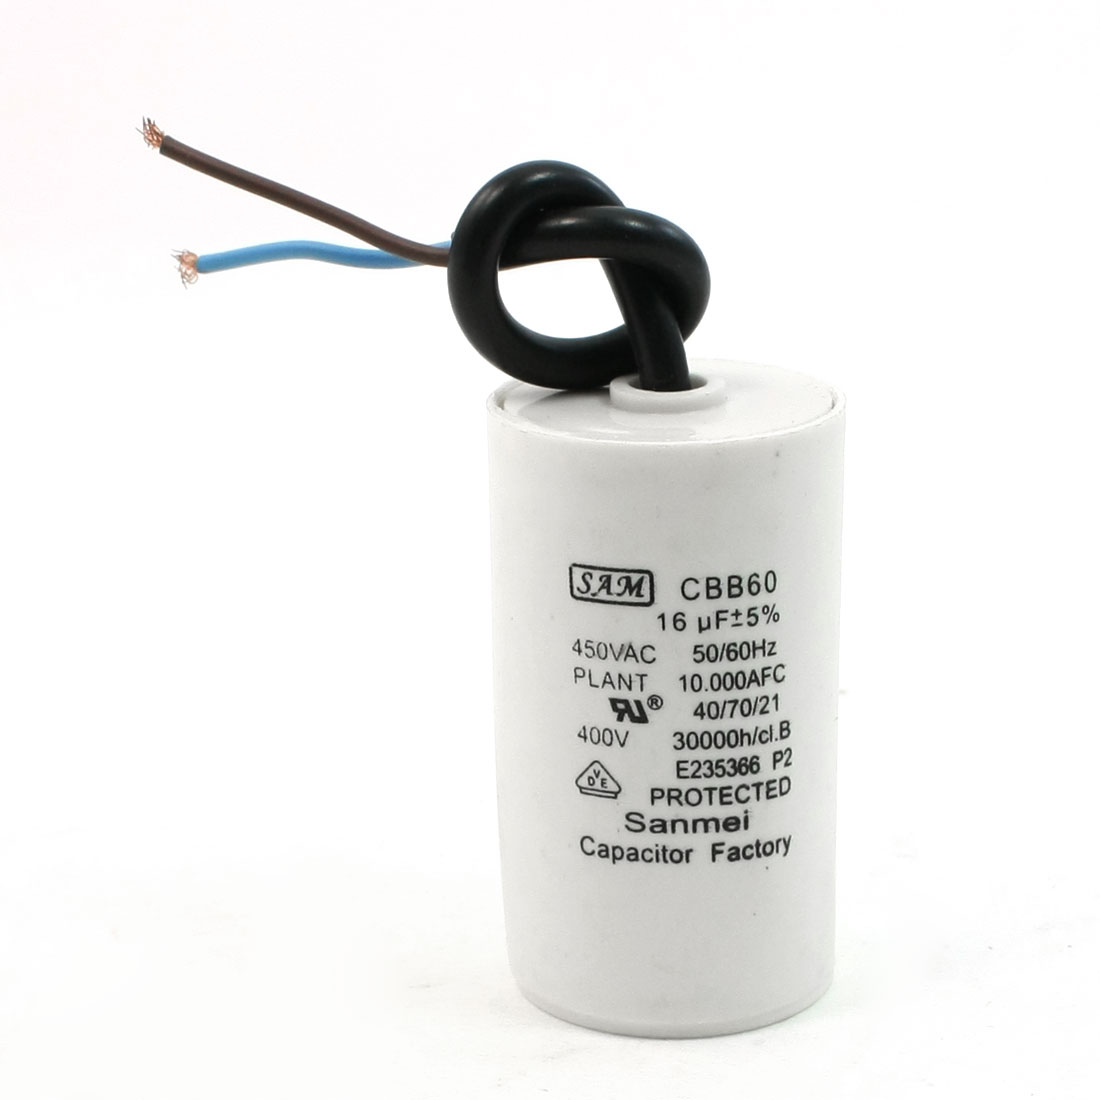 White Body Cleaning Machines 16uF AC450V Motor Run Capacitor CBB60